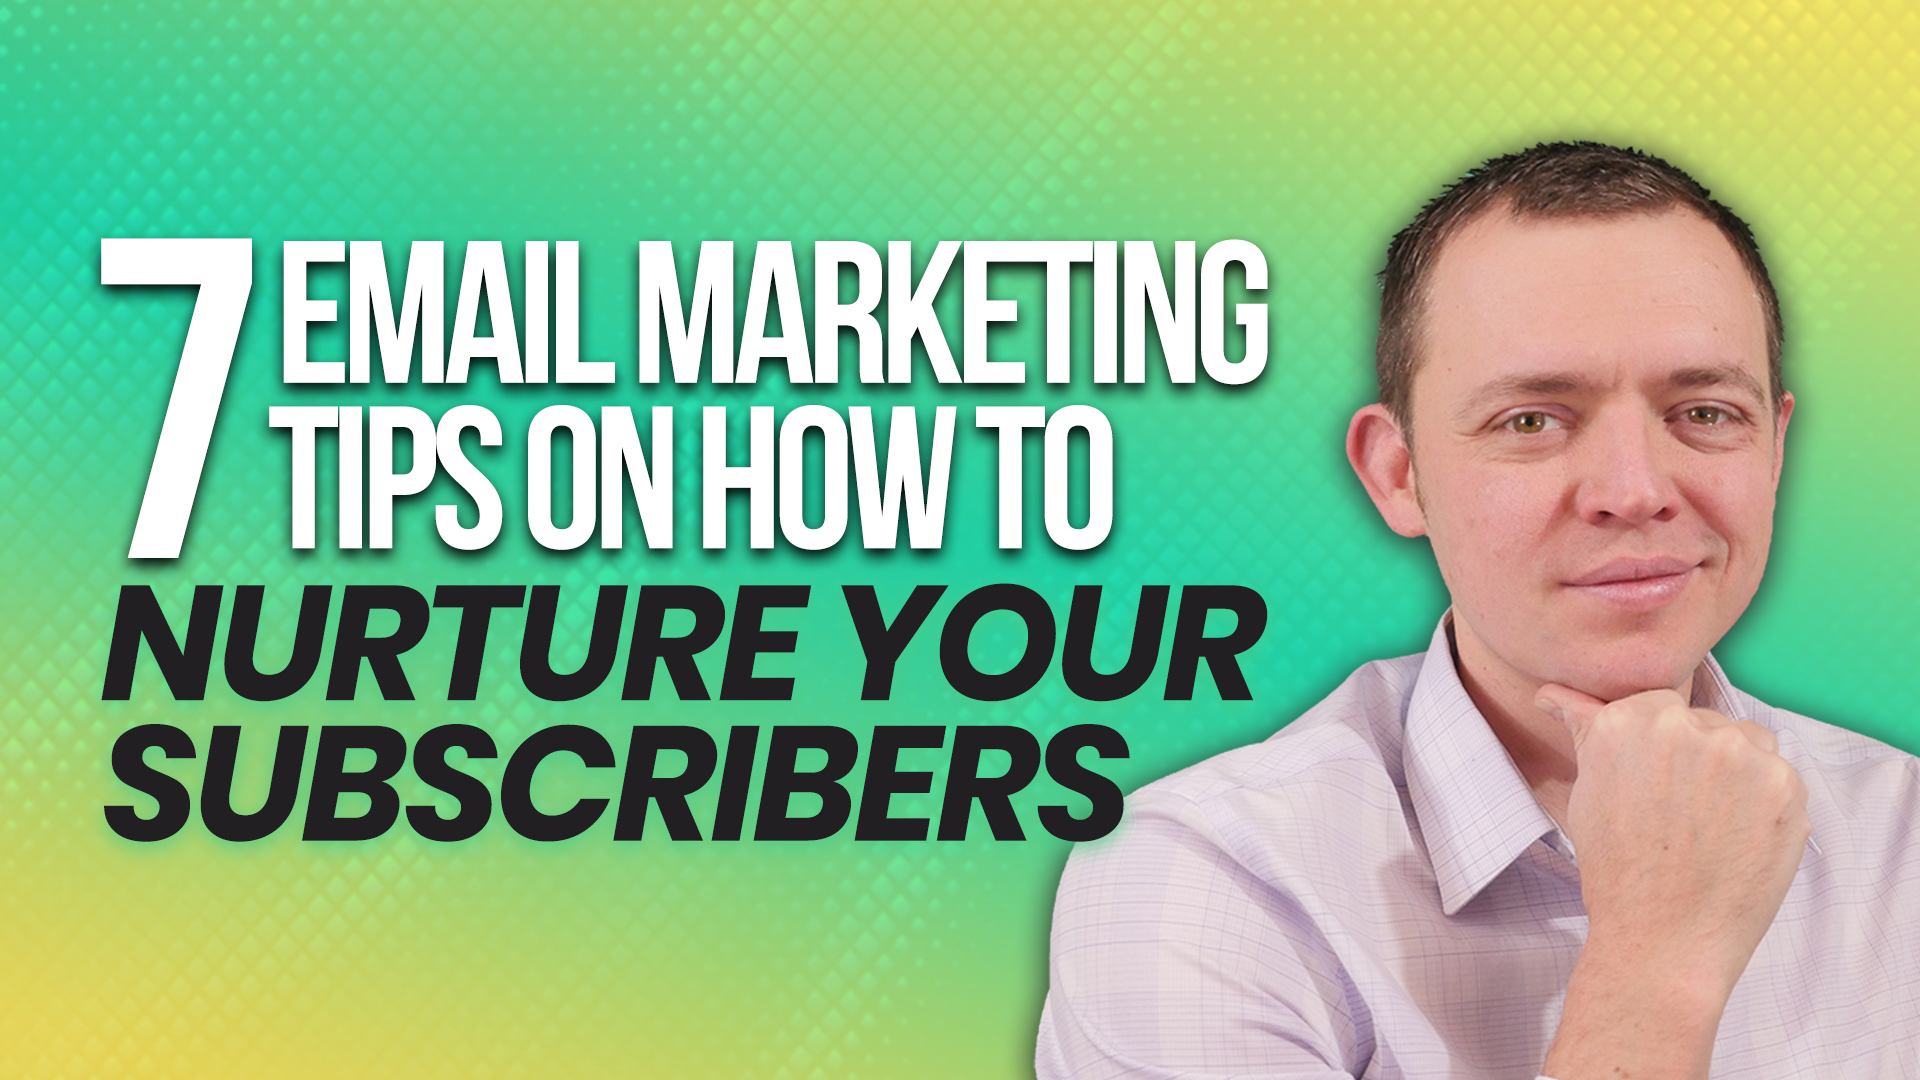 7 Email Marketing Tip How to Nurture Your Subscribers or Leads